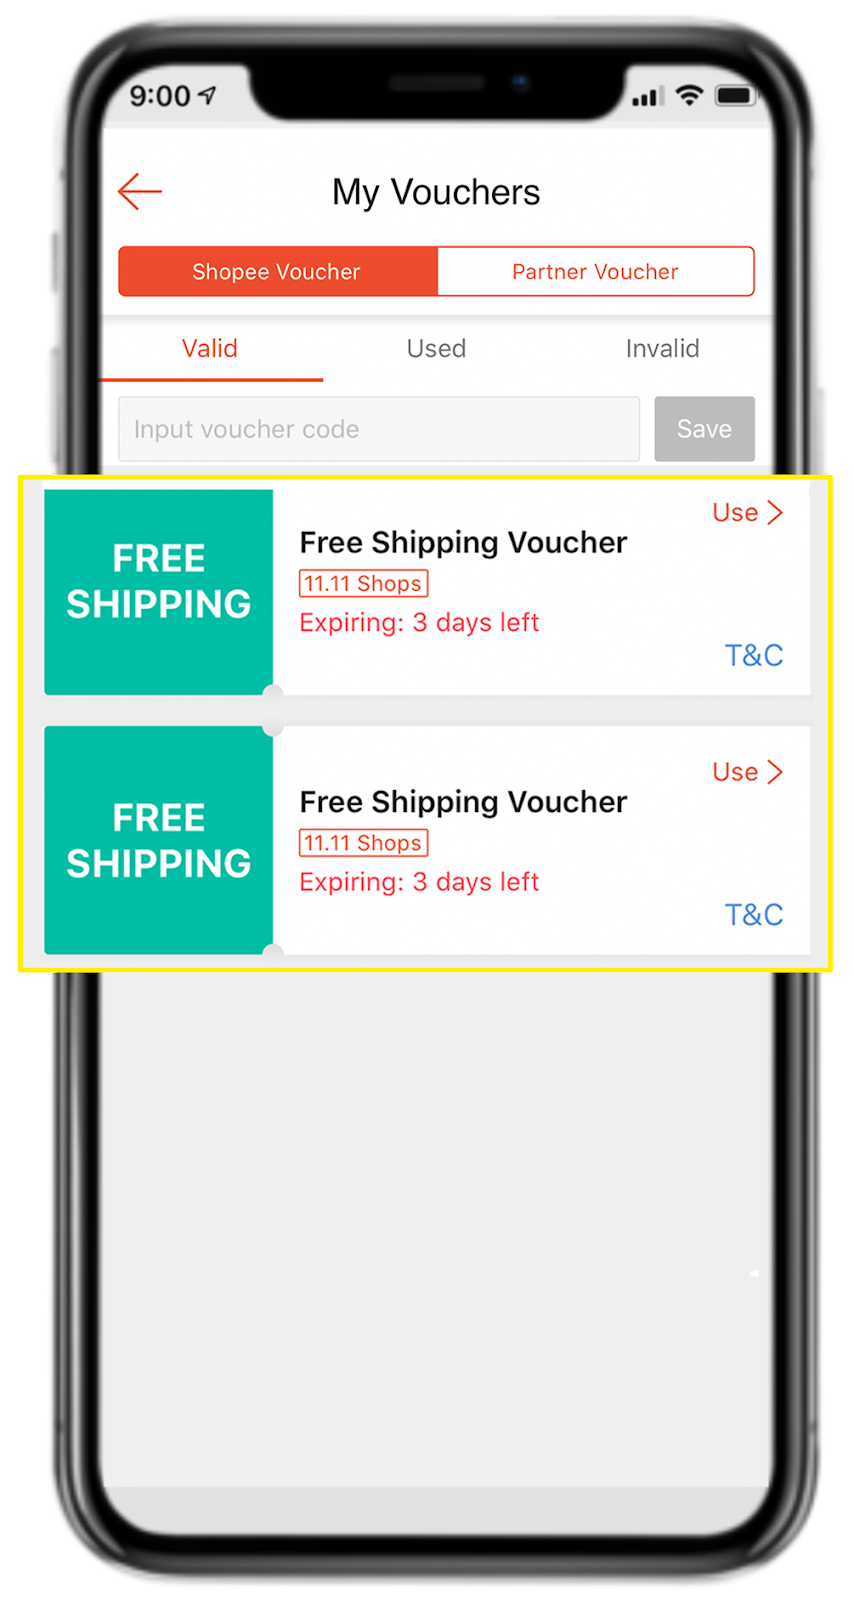 How Can I Claim Free Shipping Vouchers